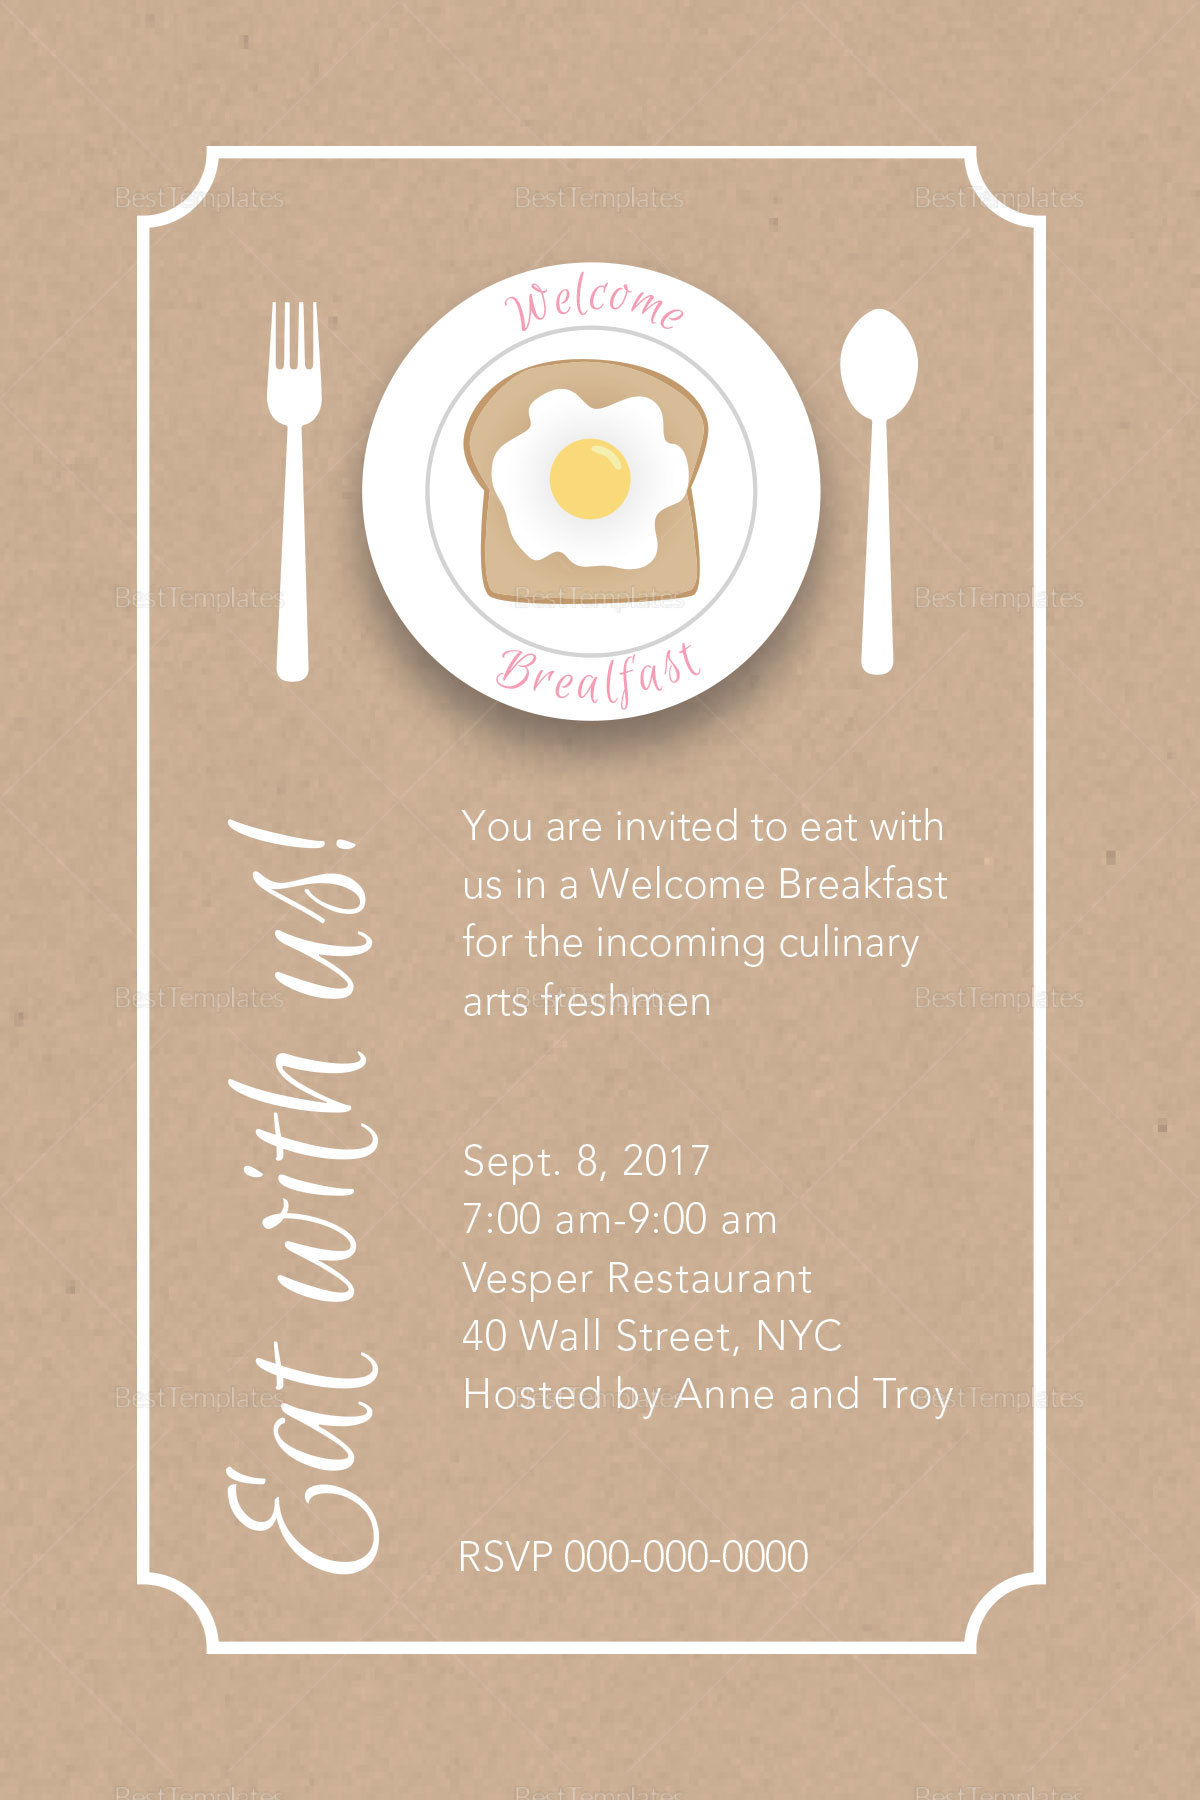 html welcome page template - breakfast invitation 6 holiday breakfast invitations jpg